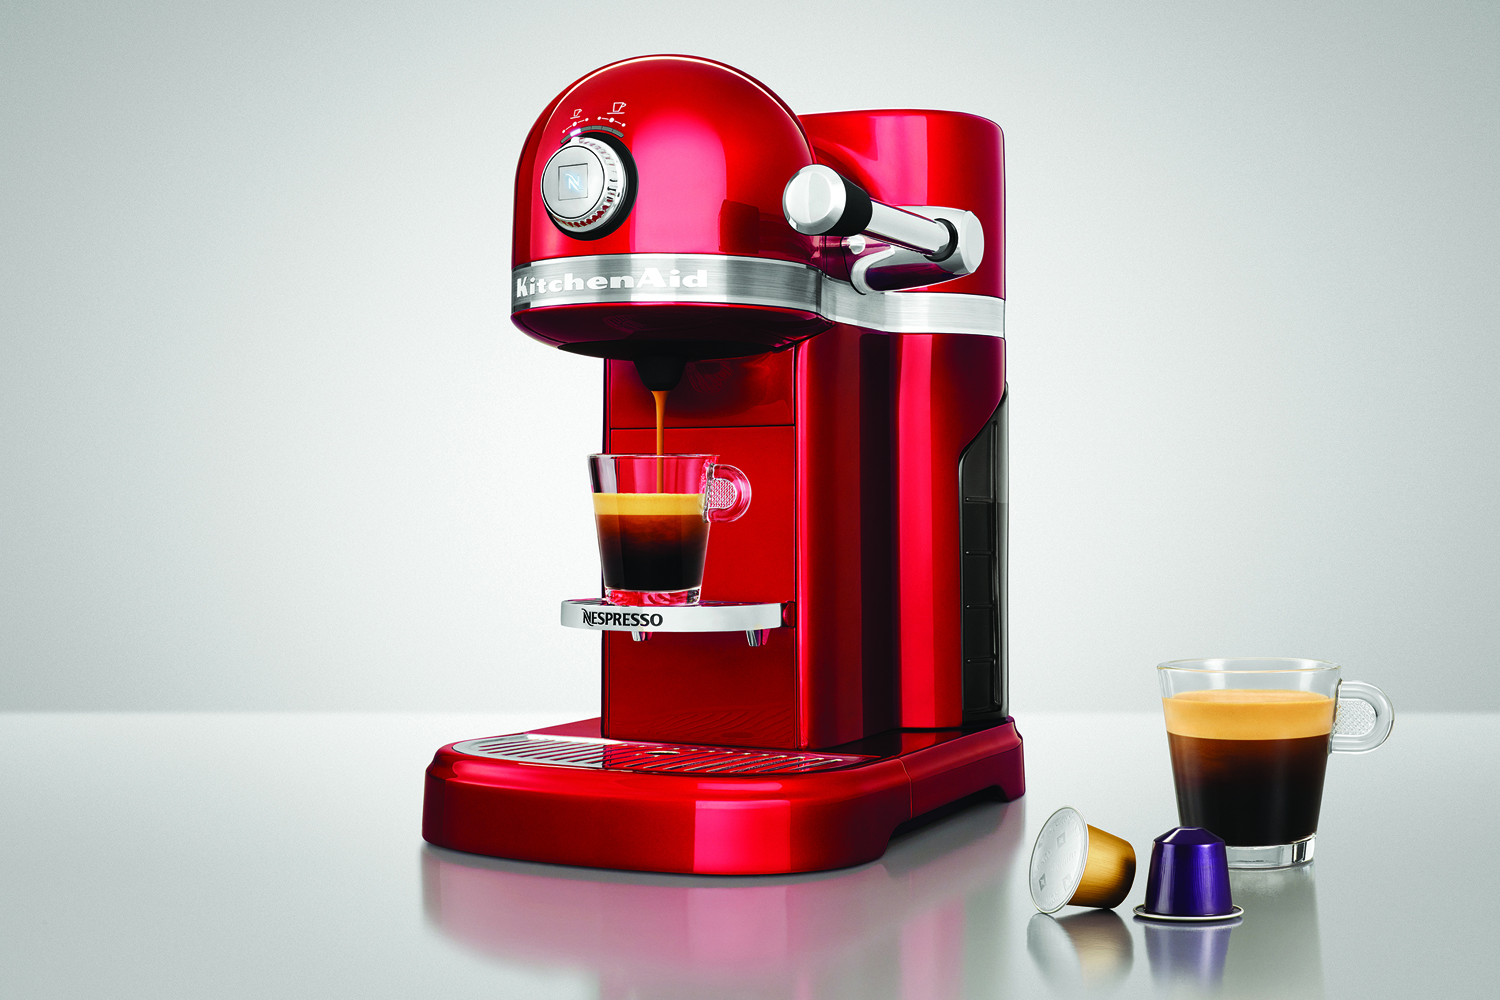 la machine caf r tro nespresso kitchenaid. Black Bedroom Furniture Sets. Home Design Ideas